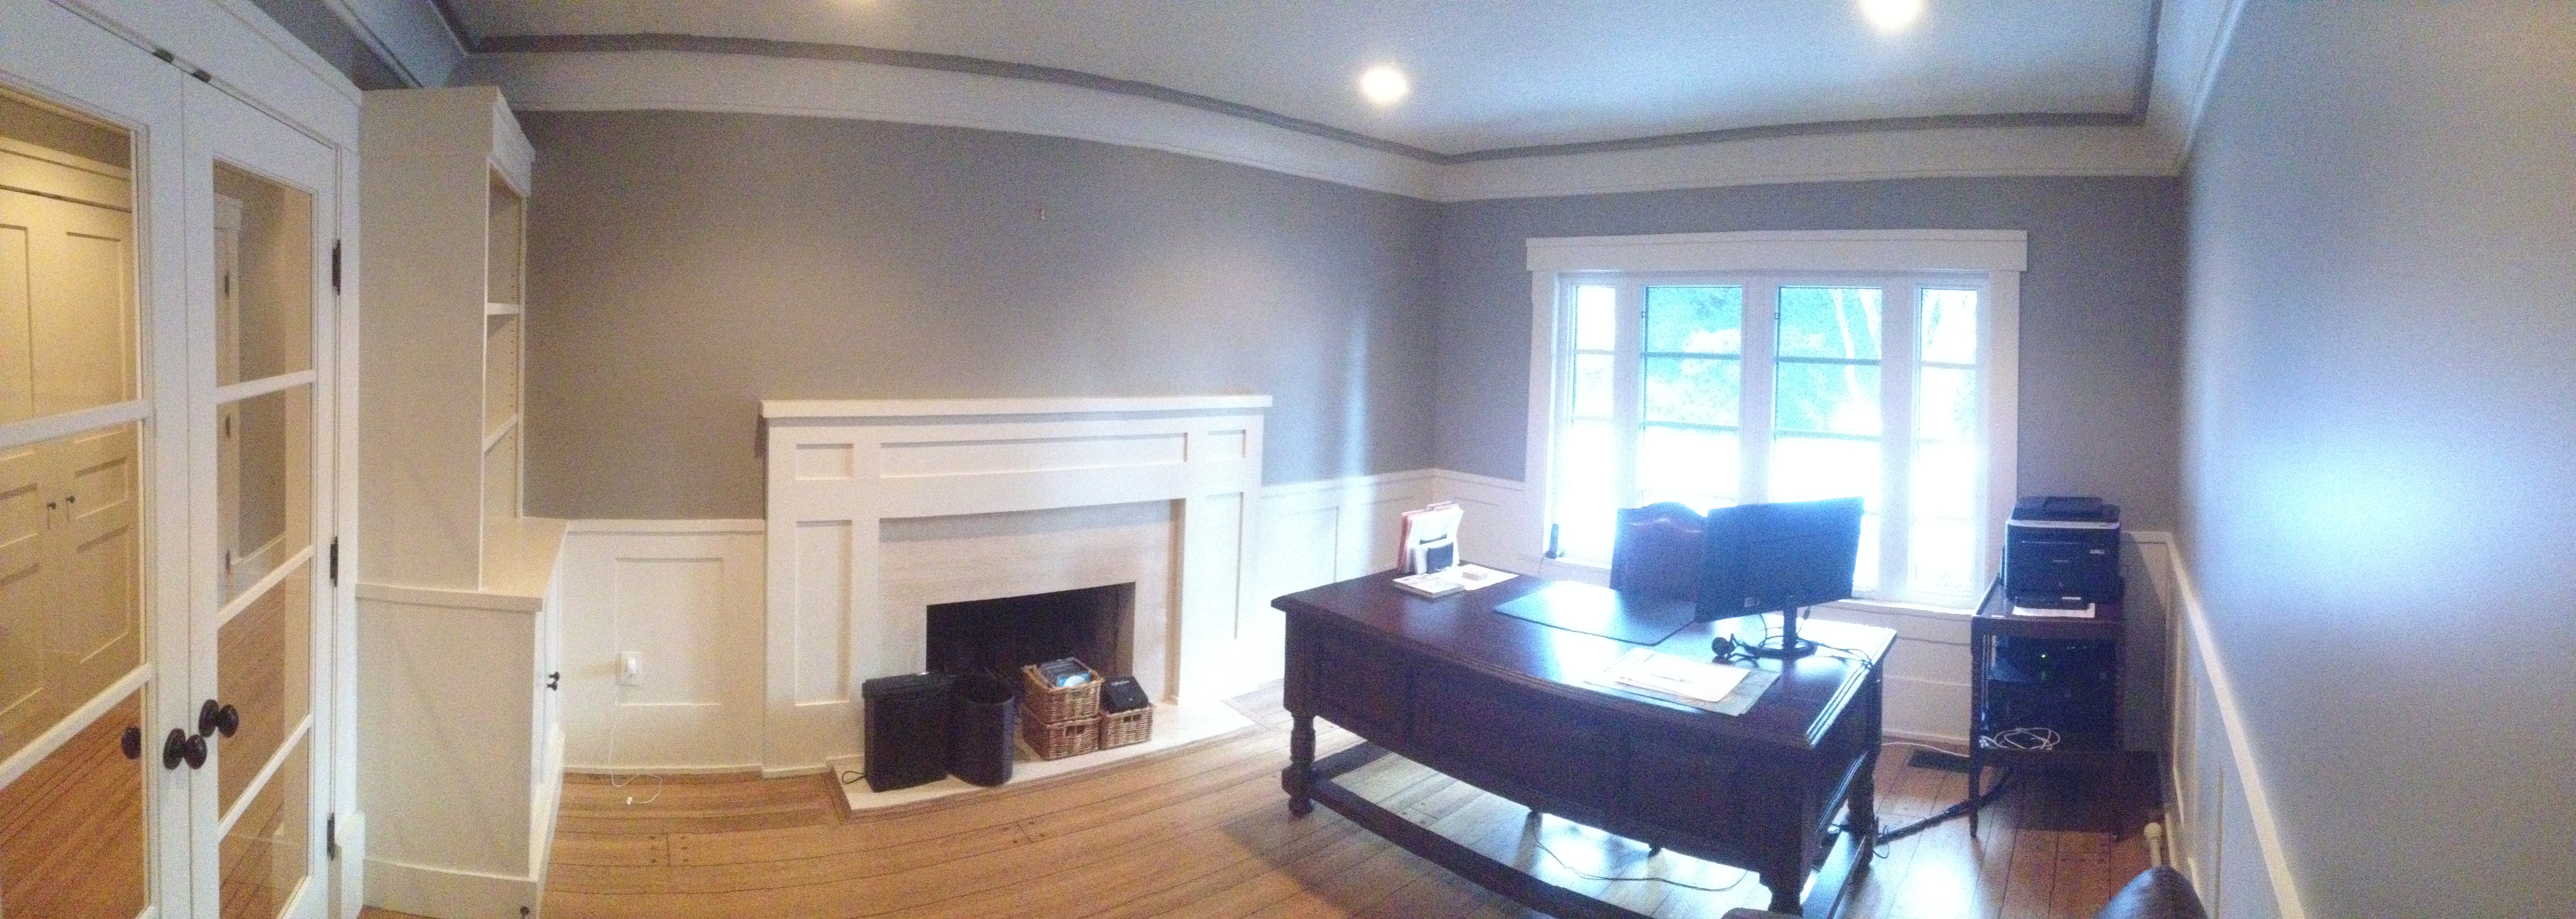 Home Office with Trim and Built Ins